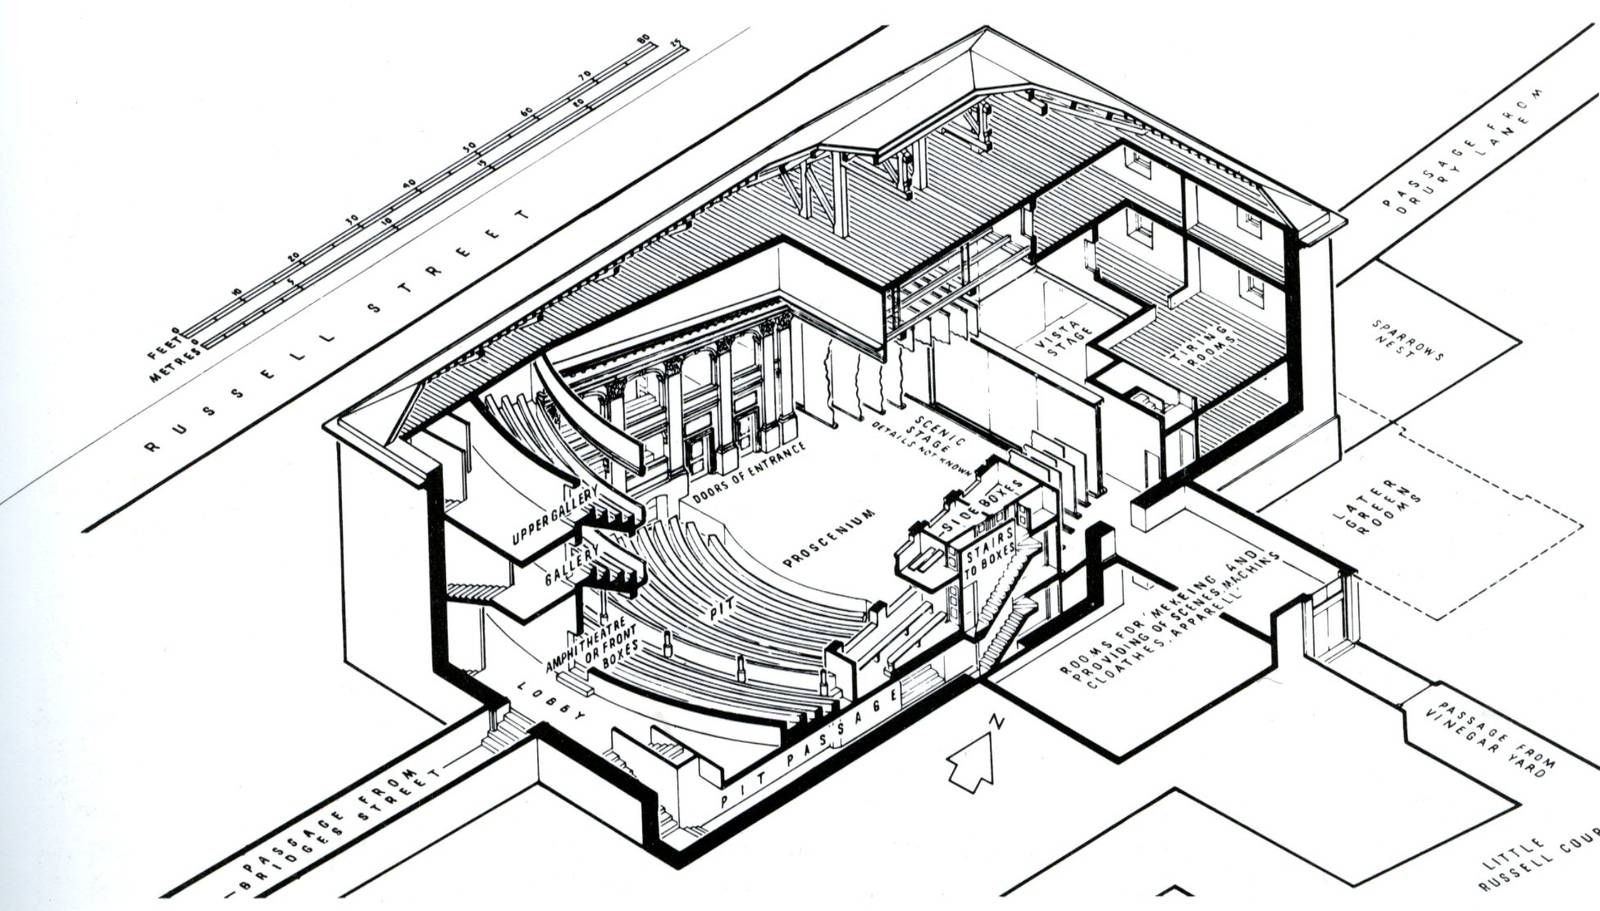 Isometric Section Sketch